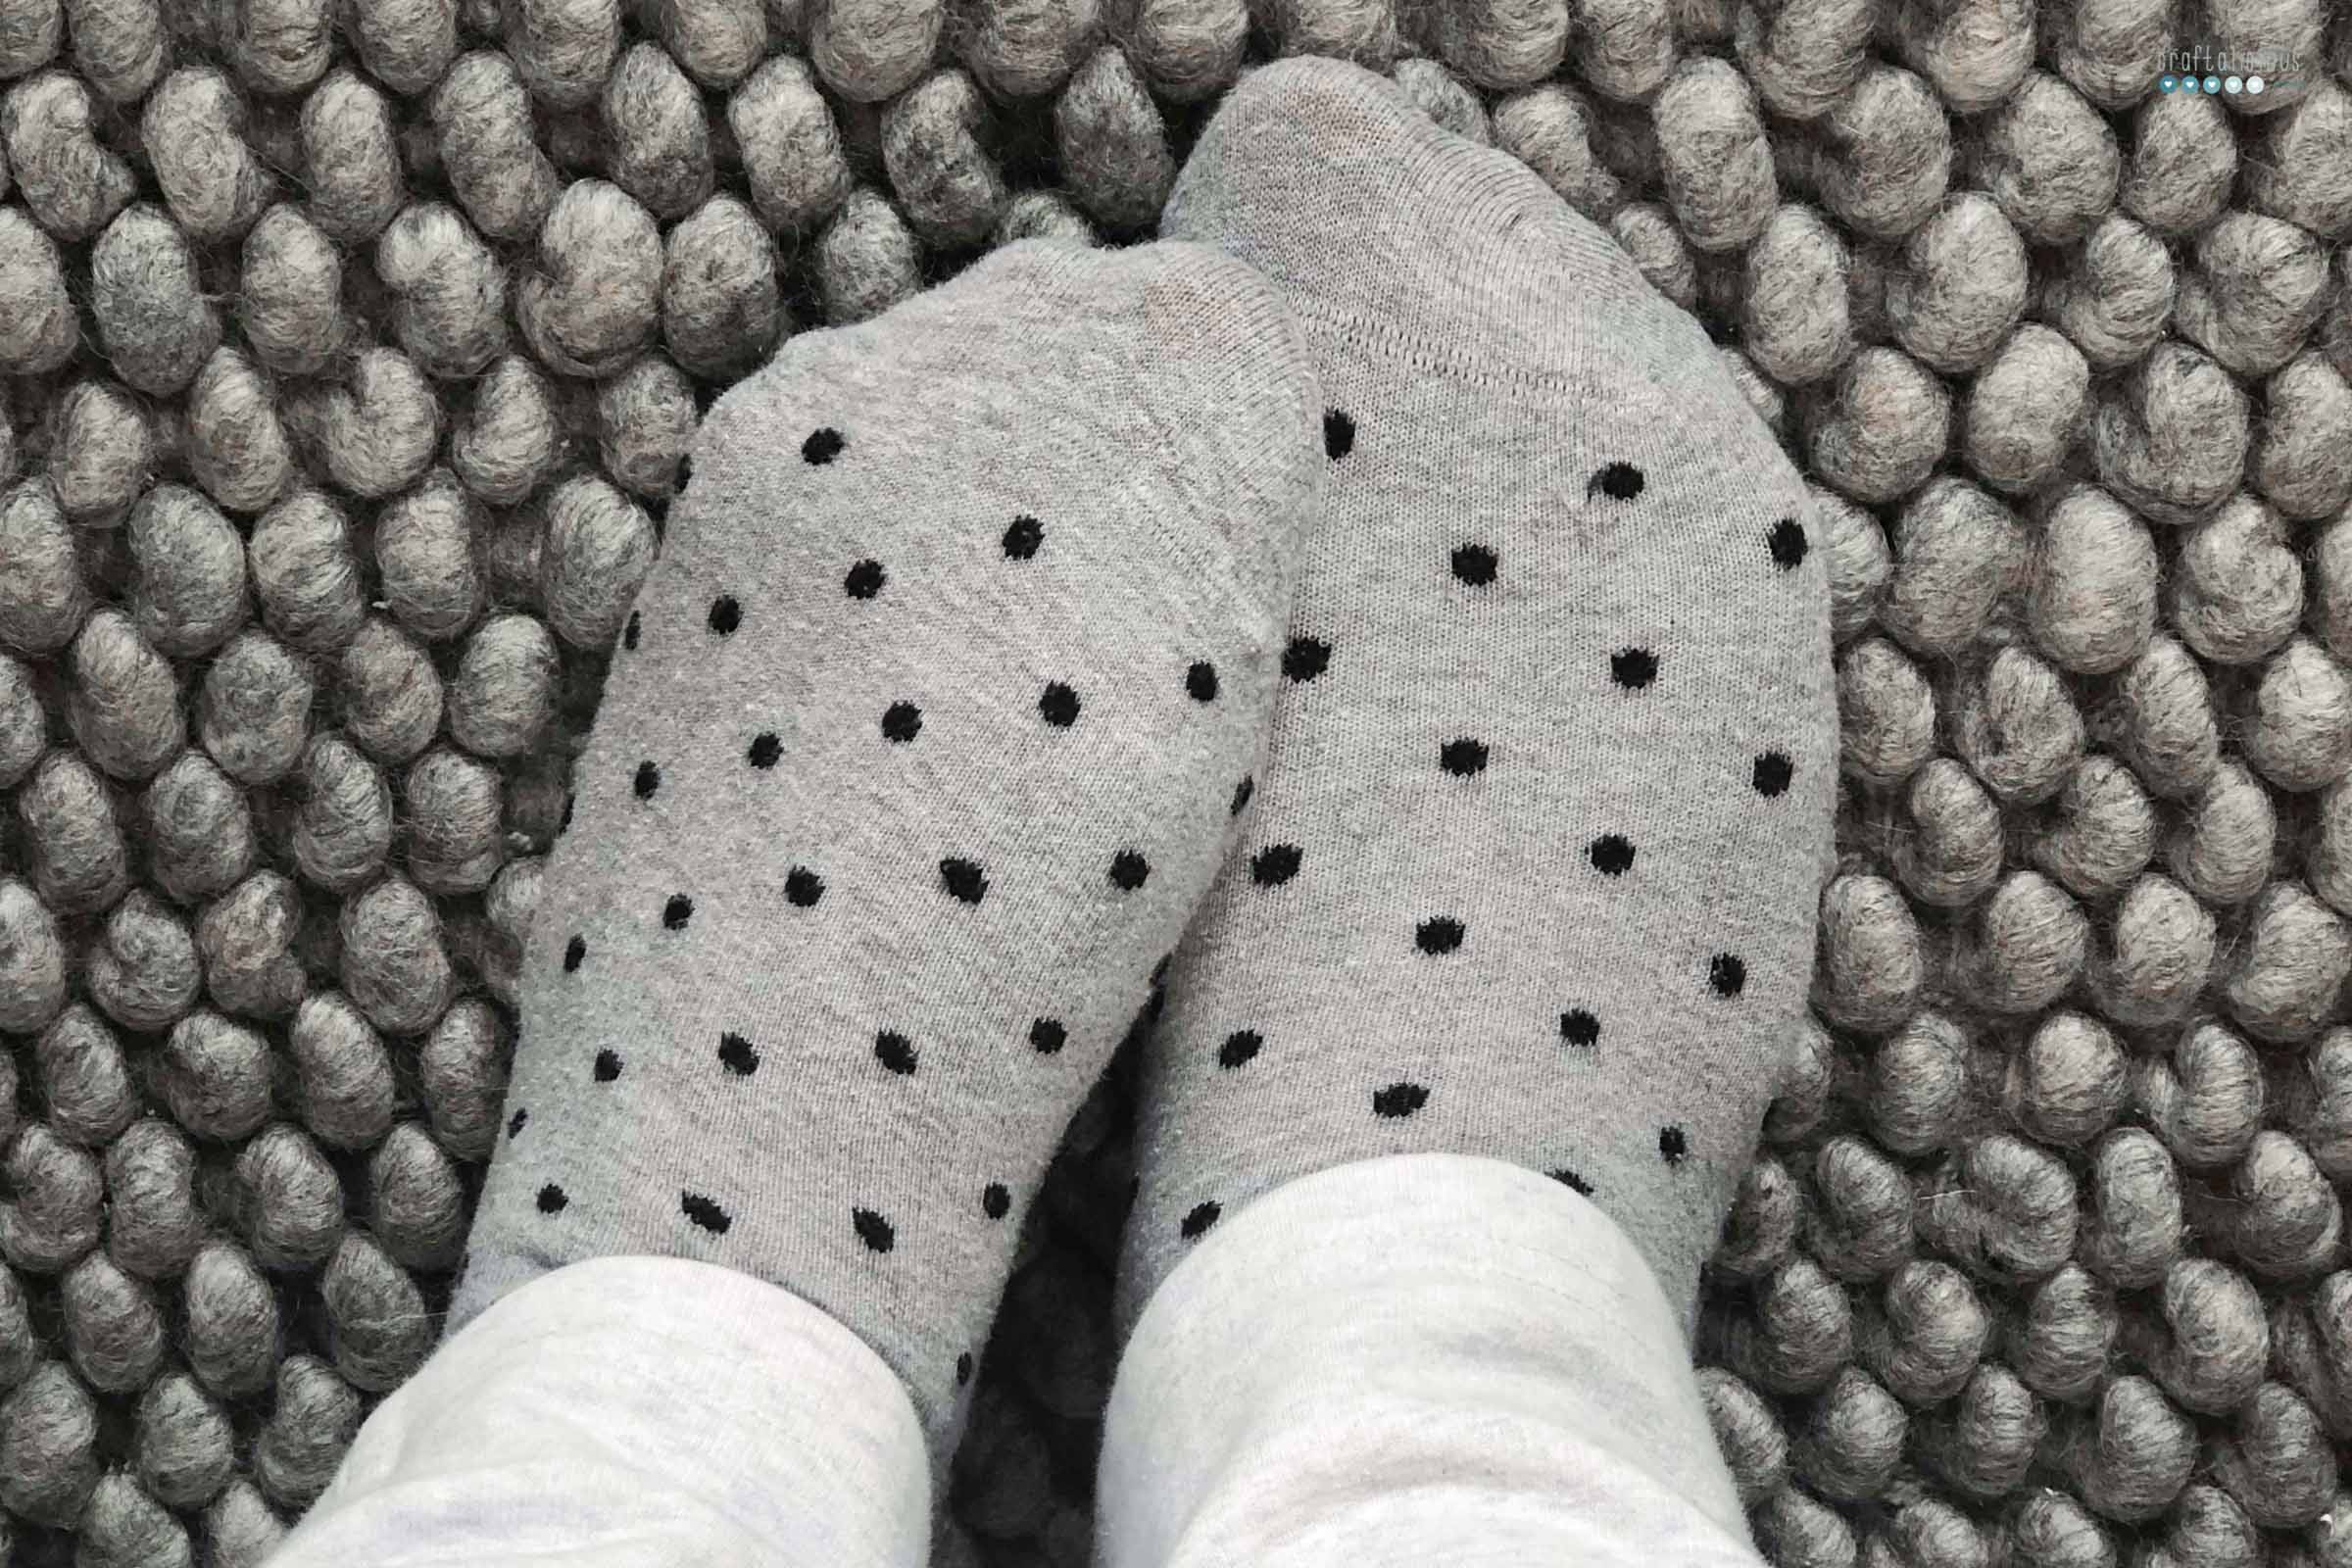 Polka dot socks craftaliciousme seeking creative life